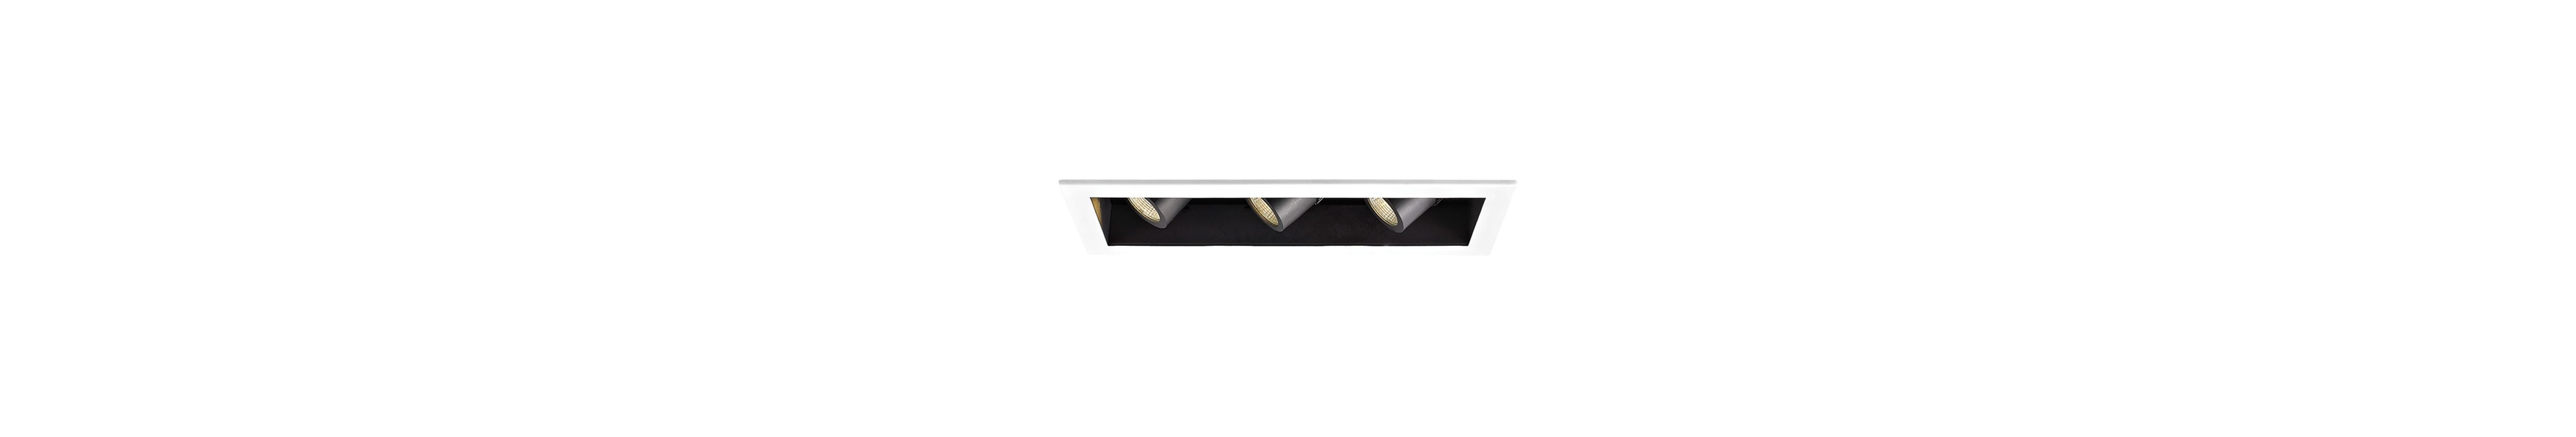 "WAC Lighting MT-4LD316N-F27 4"" Trim 2700K High Output LED Recessed"